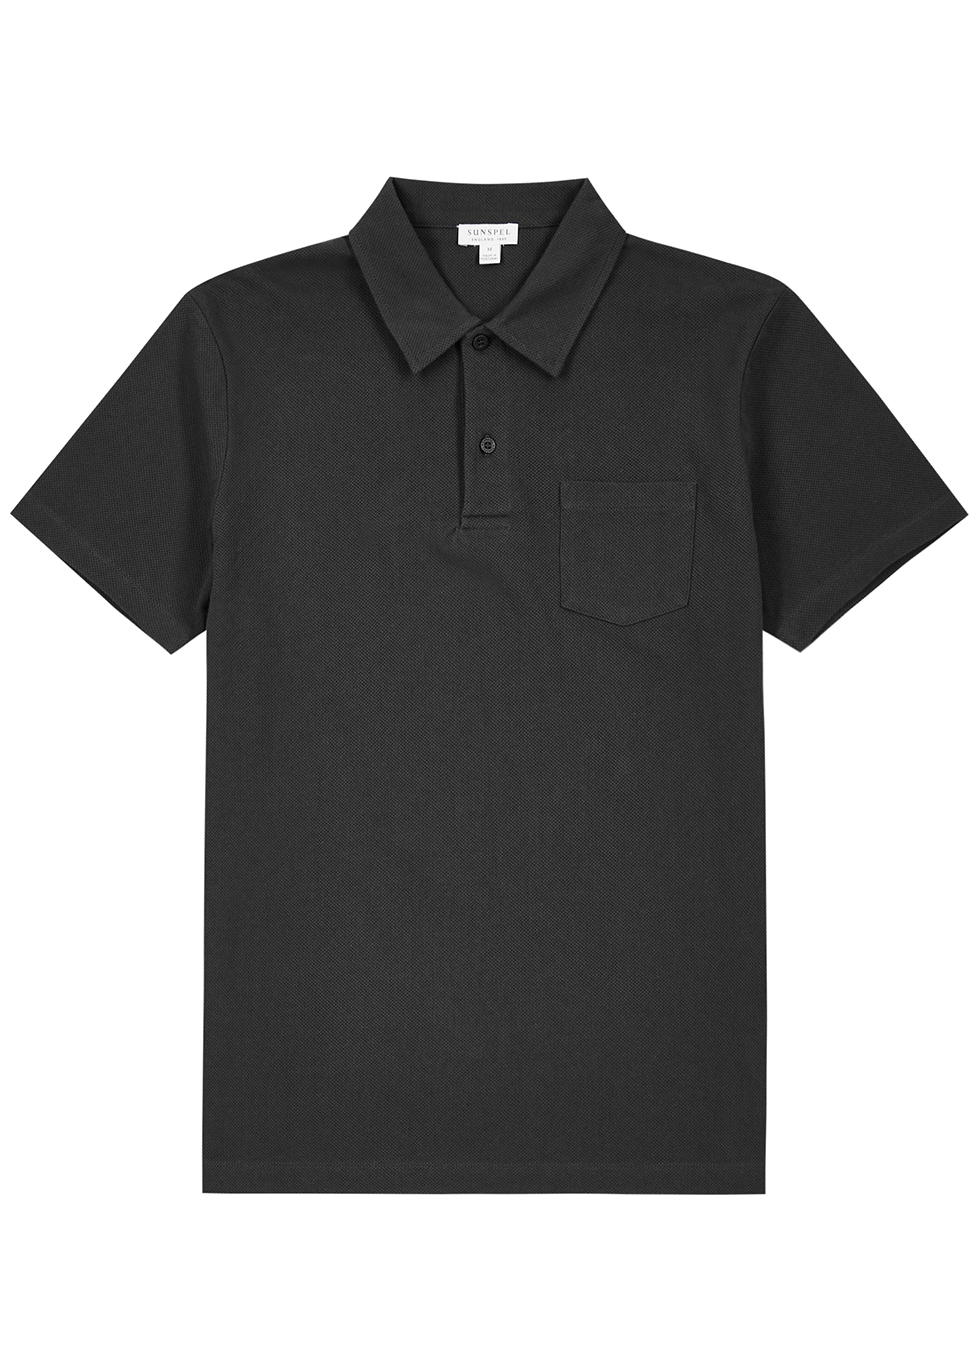 Riviera grey piqué cotton polo shirt